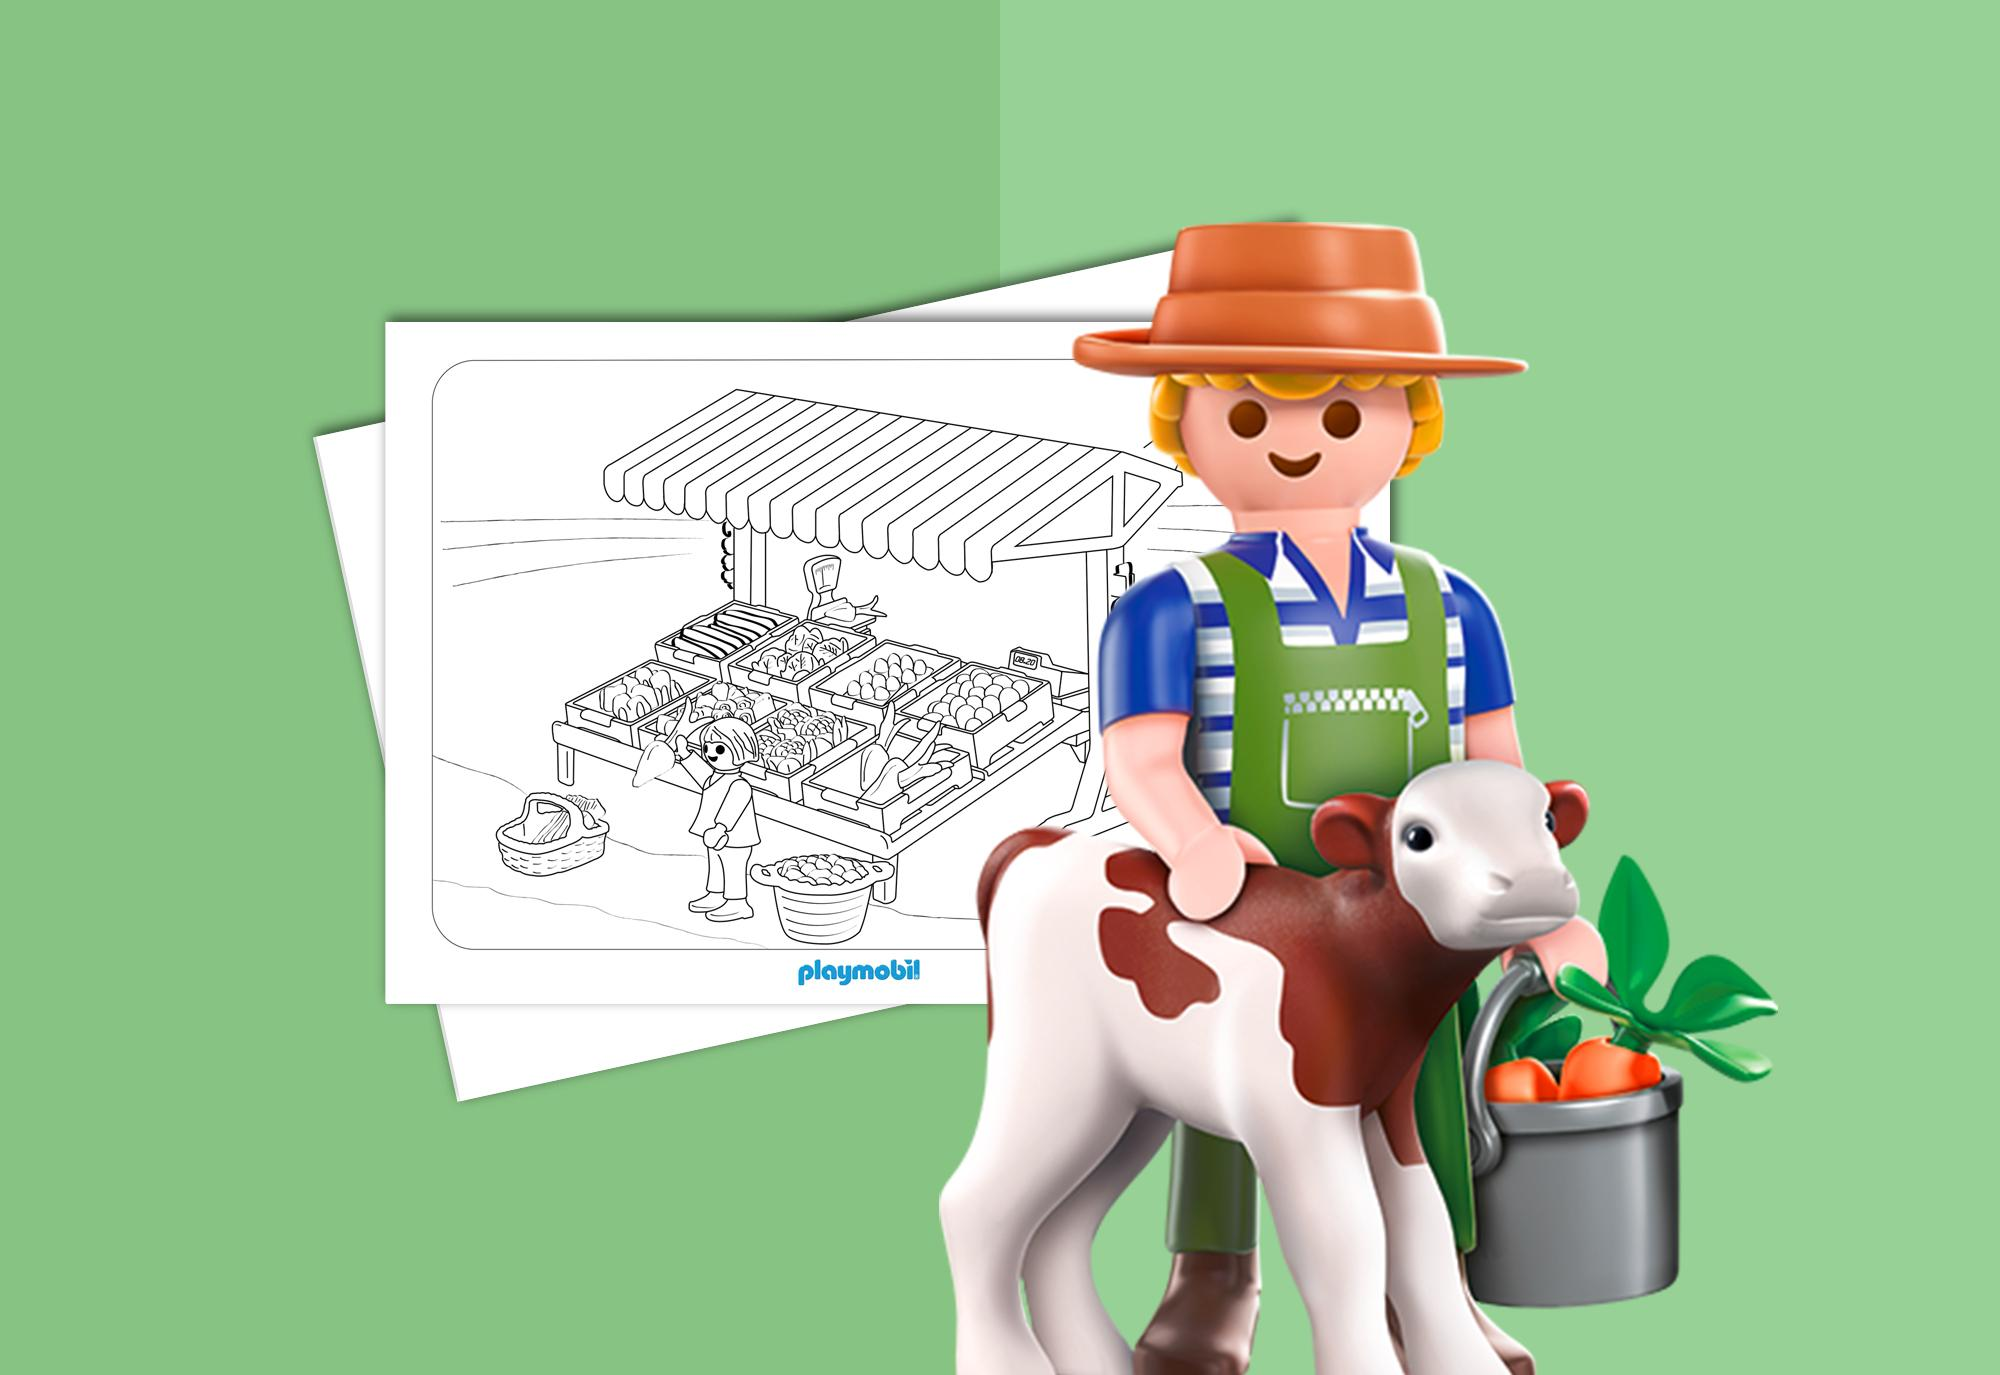 Playmobil Country Hojas Para Colorear Granja Playmobil Espana